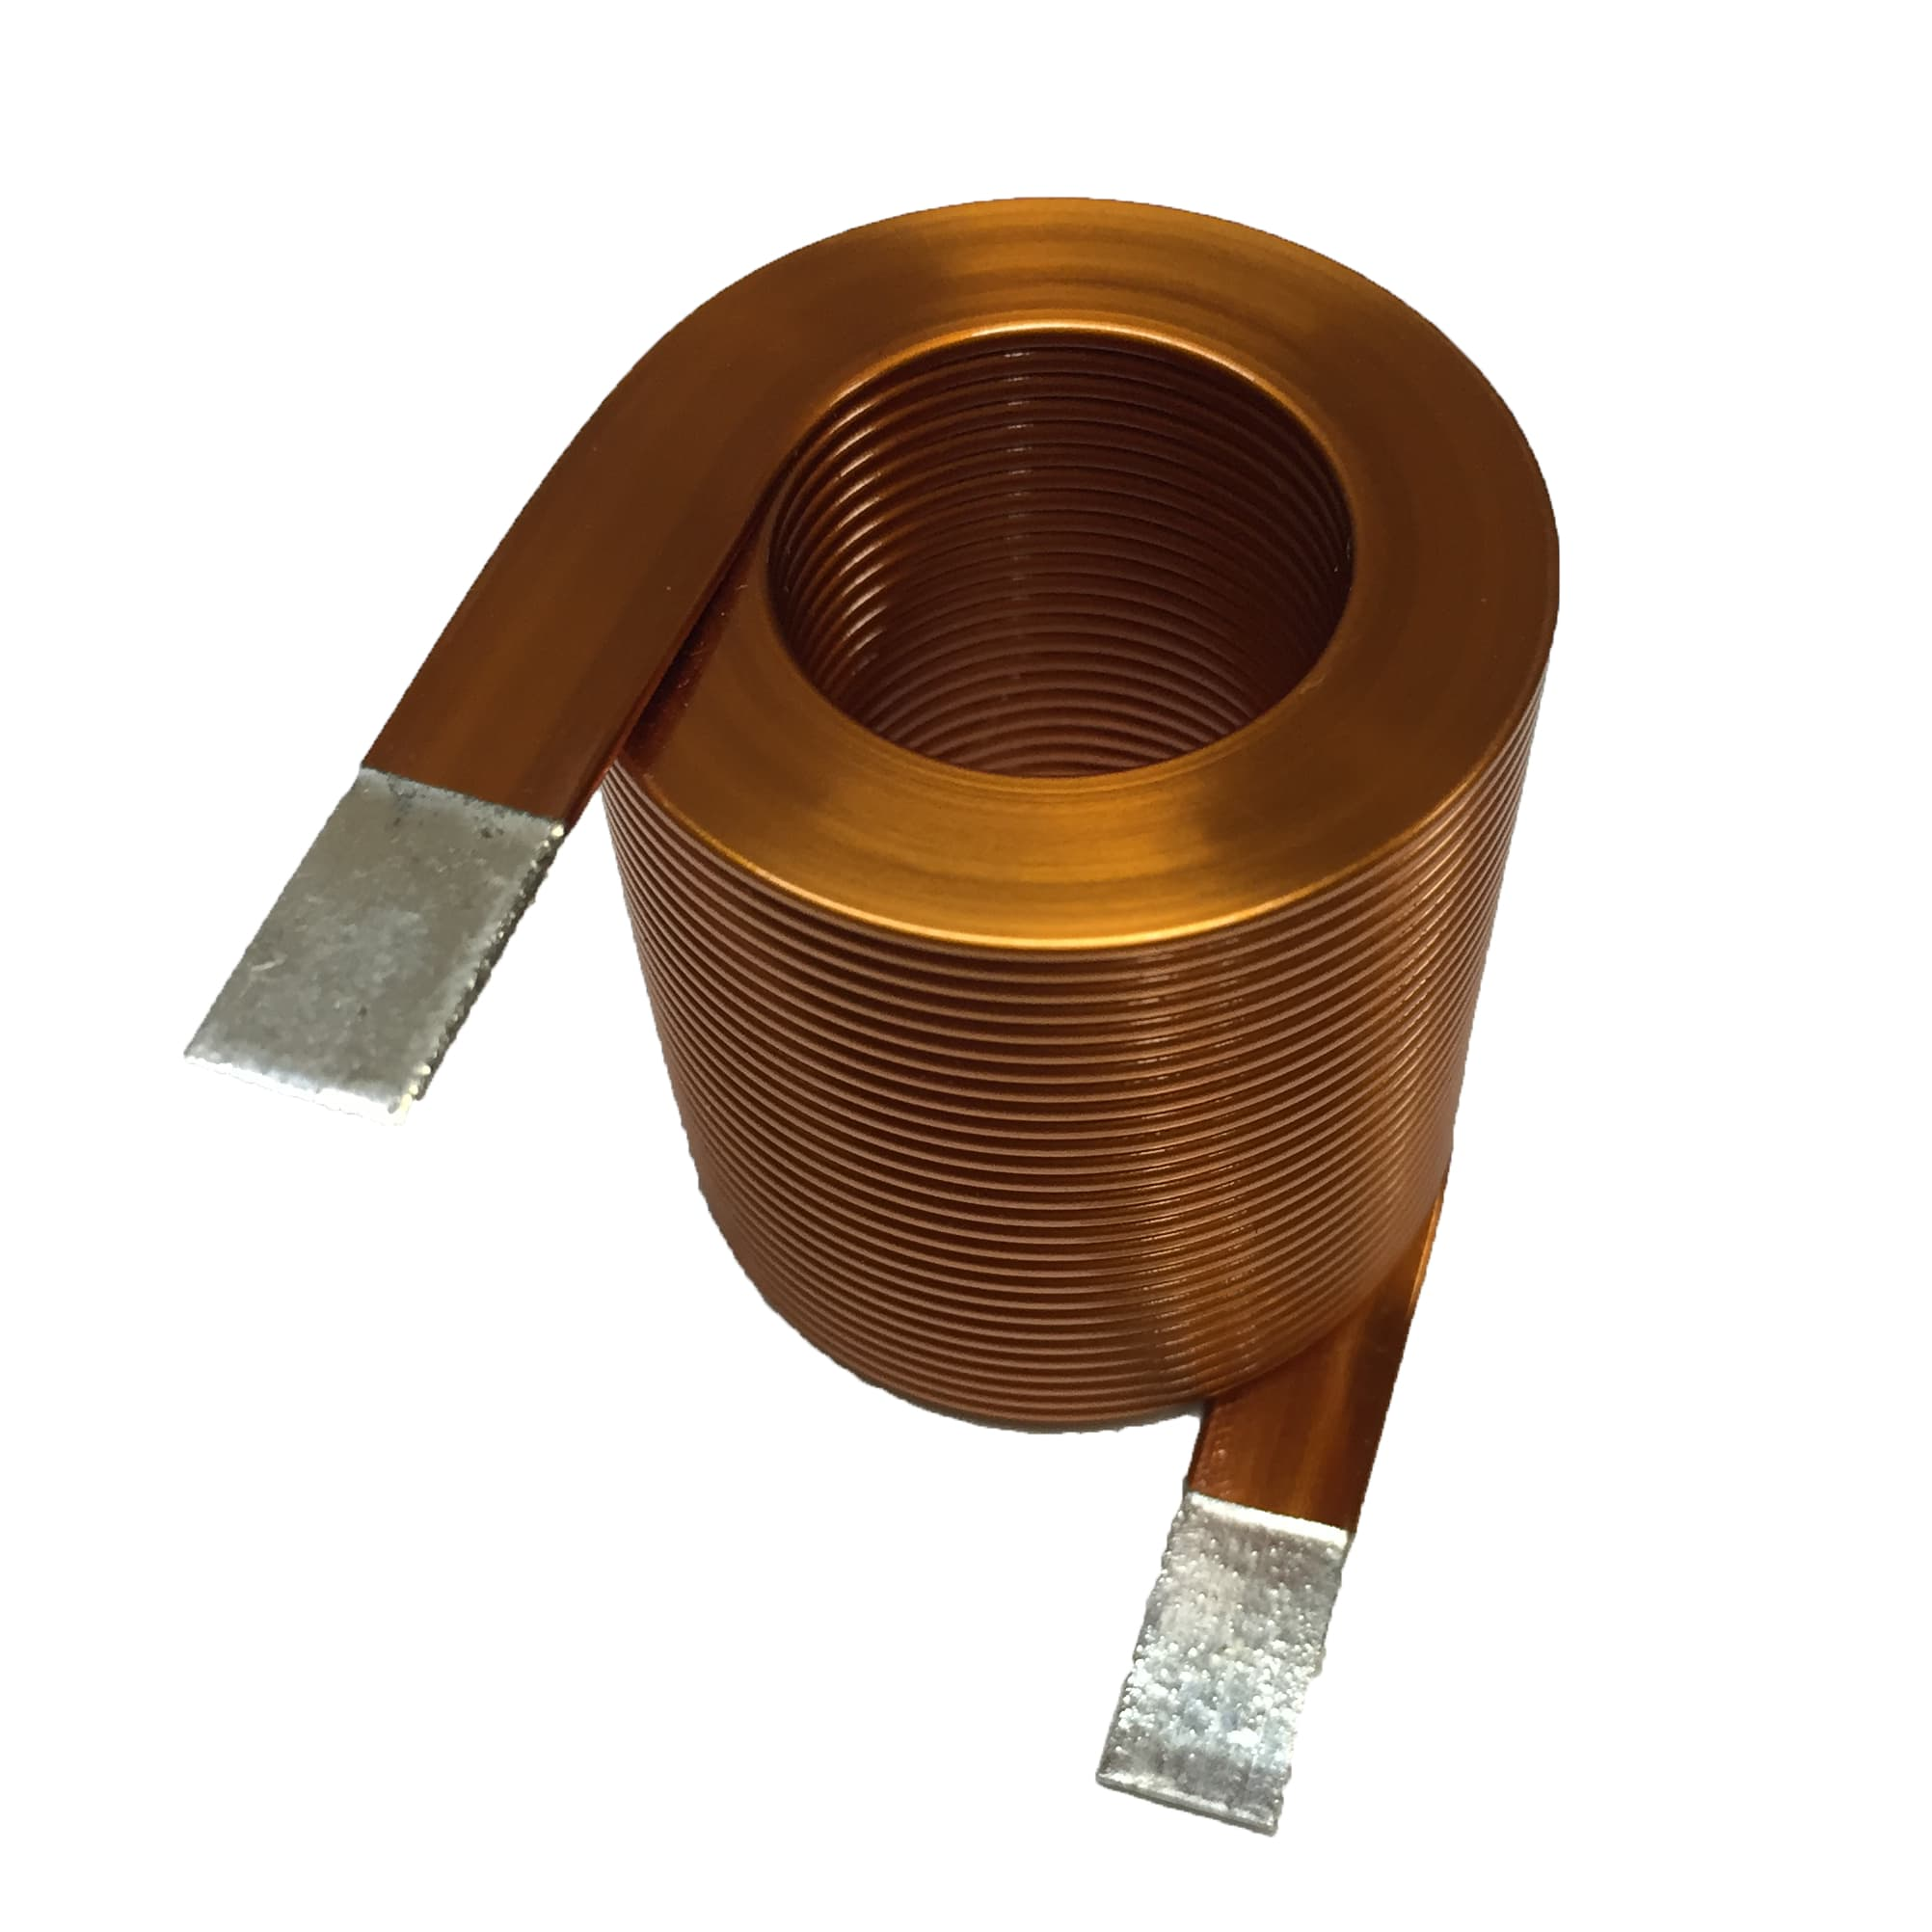 CAC Series Air Coil Inductor : CWS Coil Winding Specialist